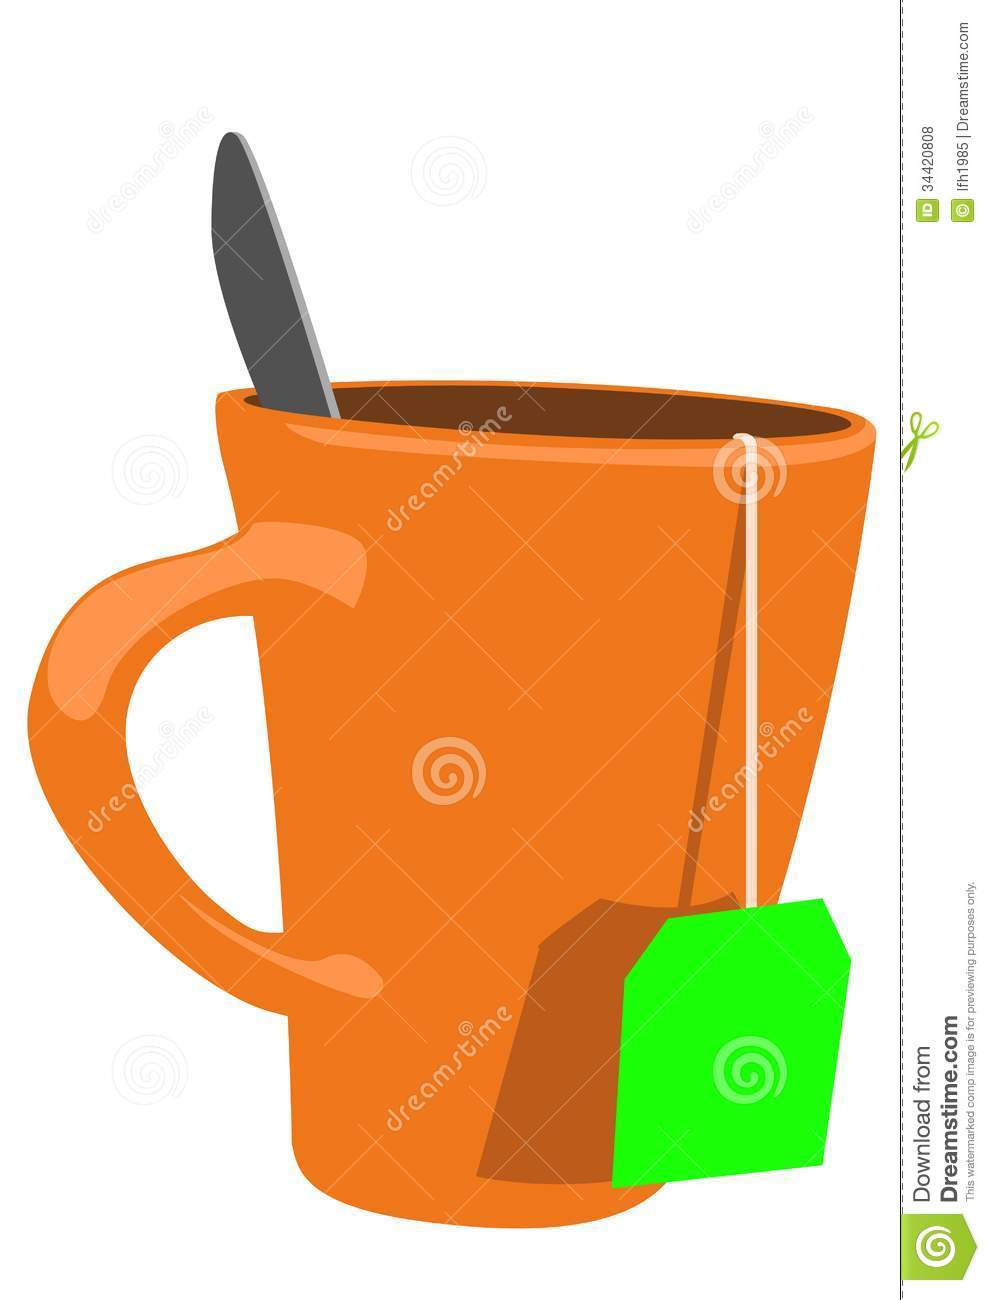 Orange Cup Of Tea With Green Label Royalty Free Stock Photos - Image ...